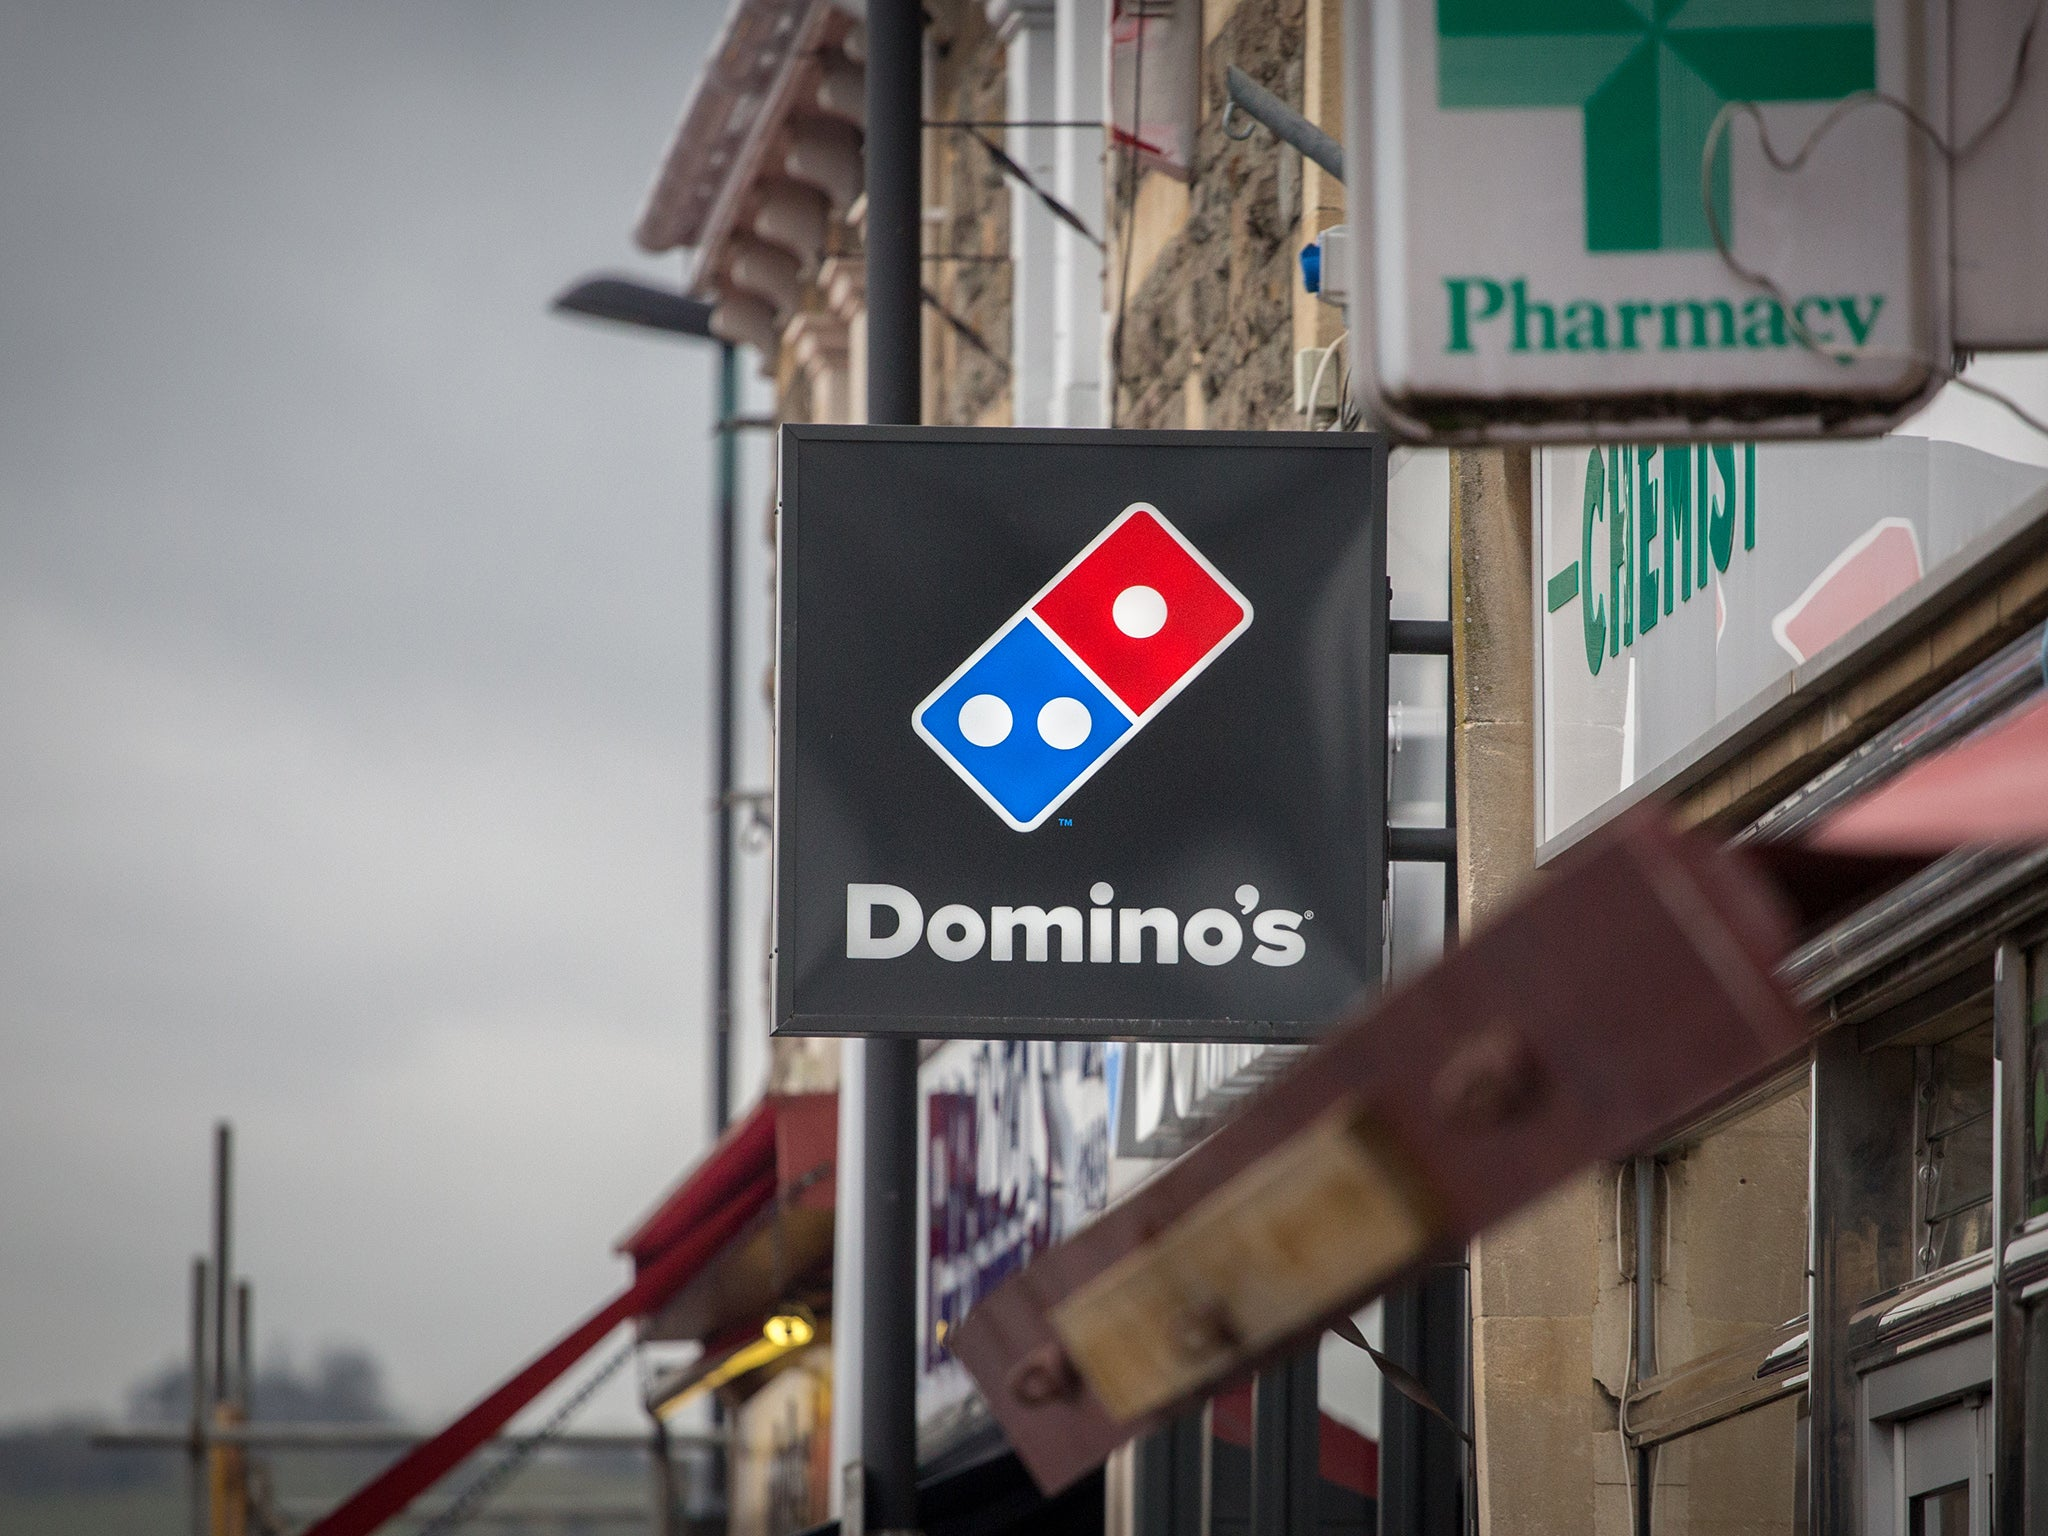 Dominos was forced to end promo offering free pizza for brand tattoos forecasting